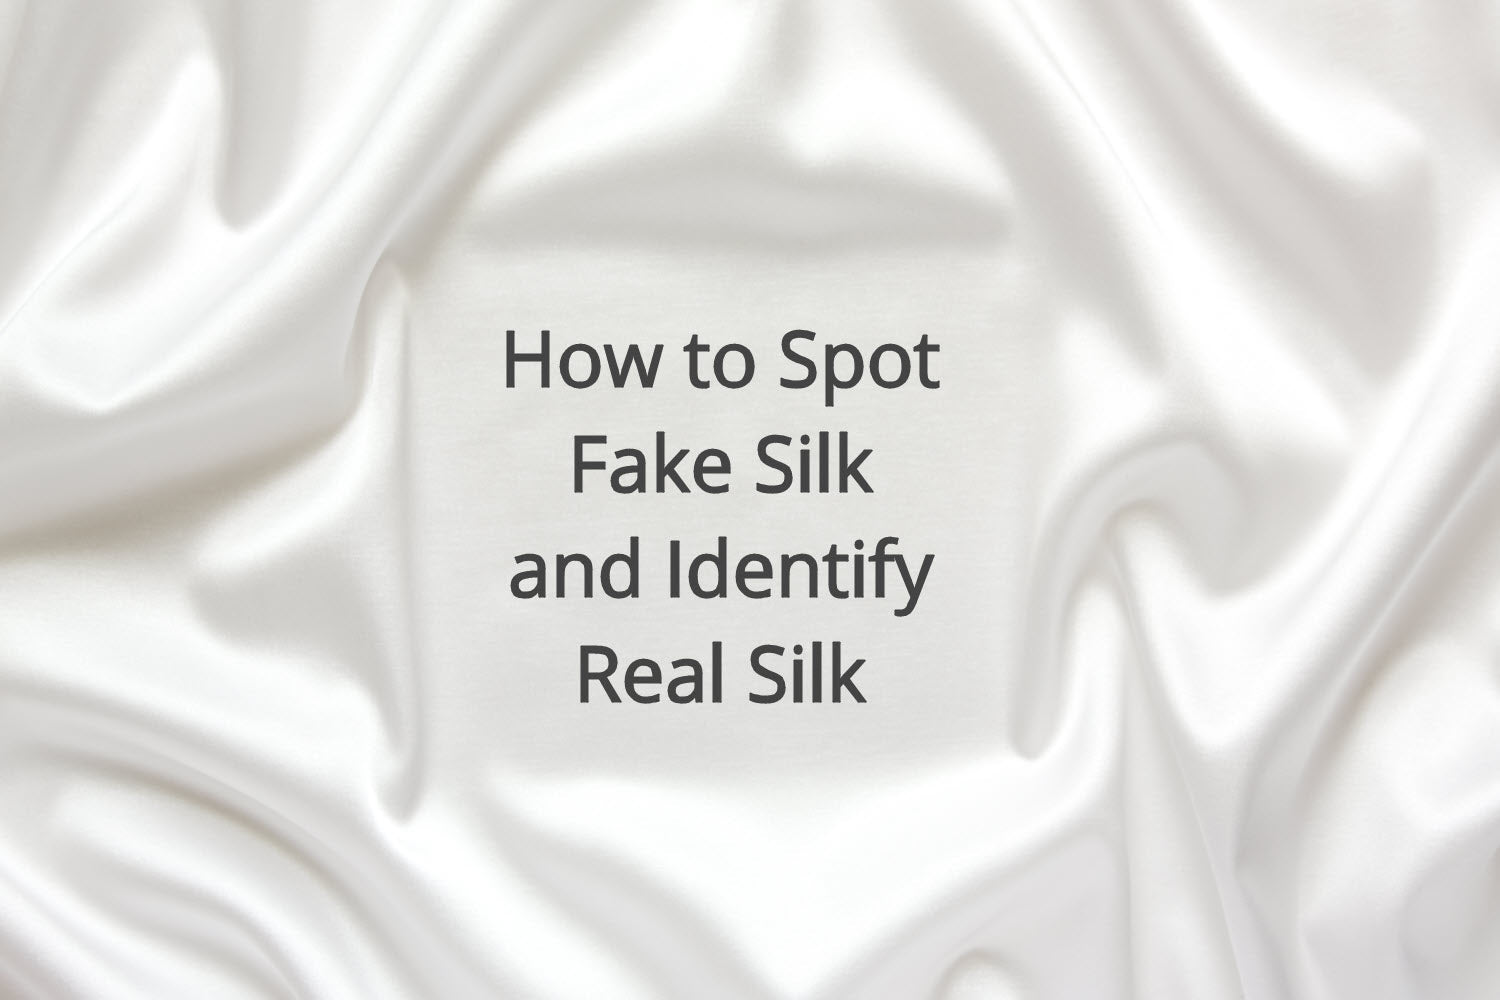 How to Spot Fake Silk and Identify Real Silk